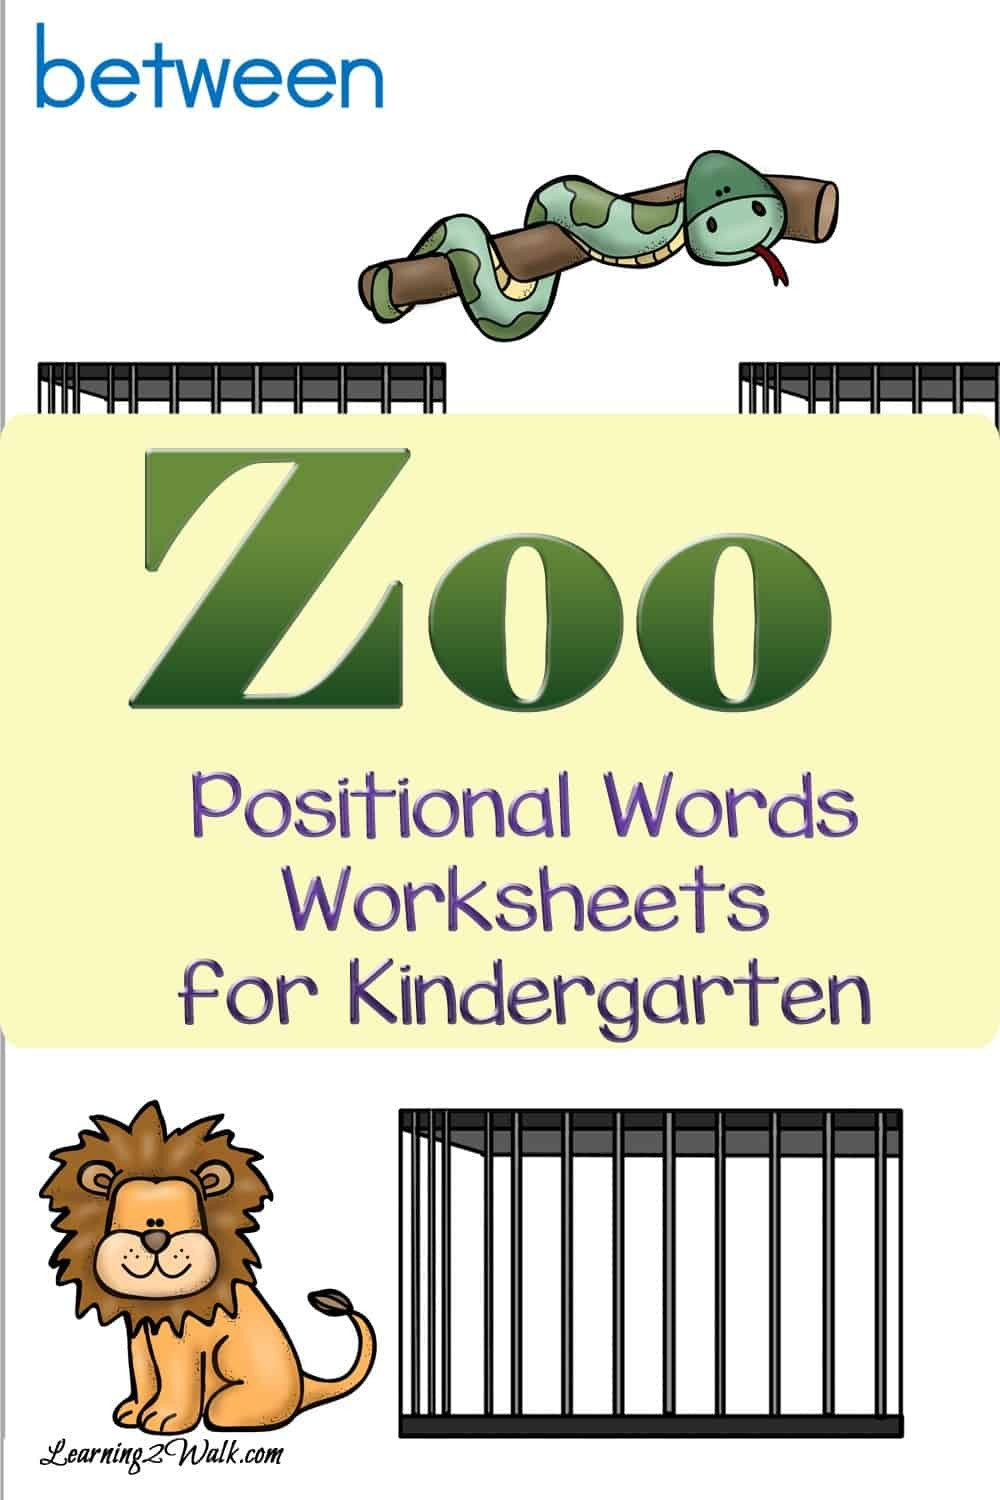 Positional Words Worksheets Zoo Positional Words Worksheets for Kindergarten